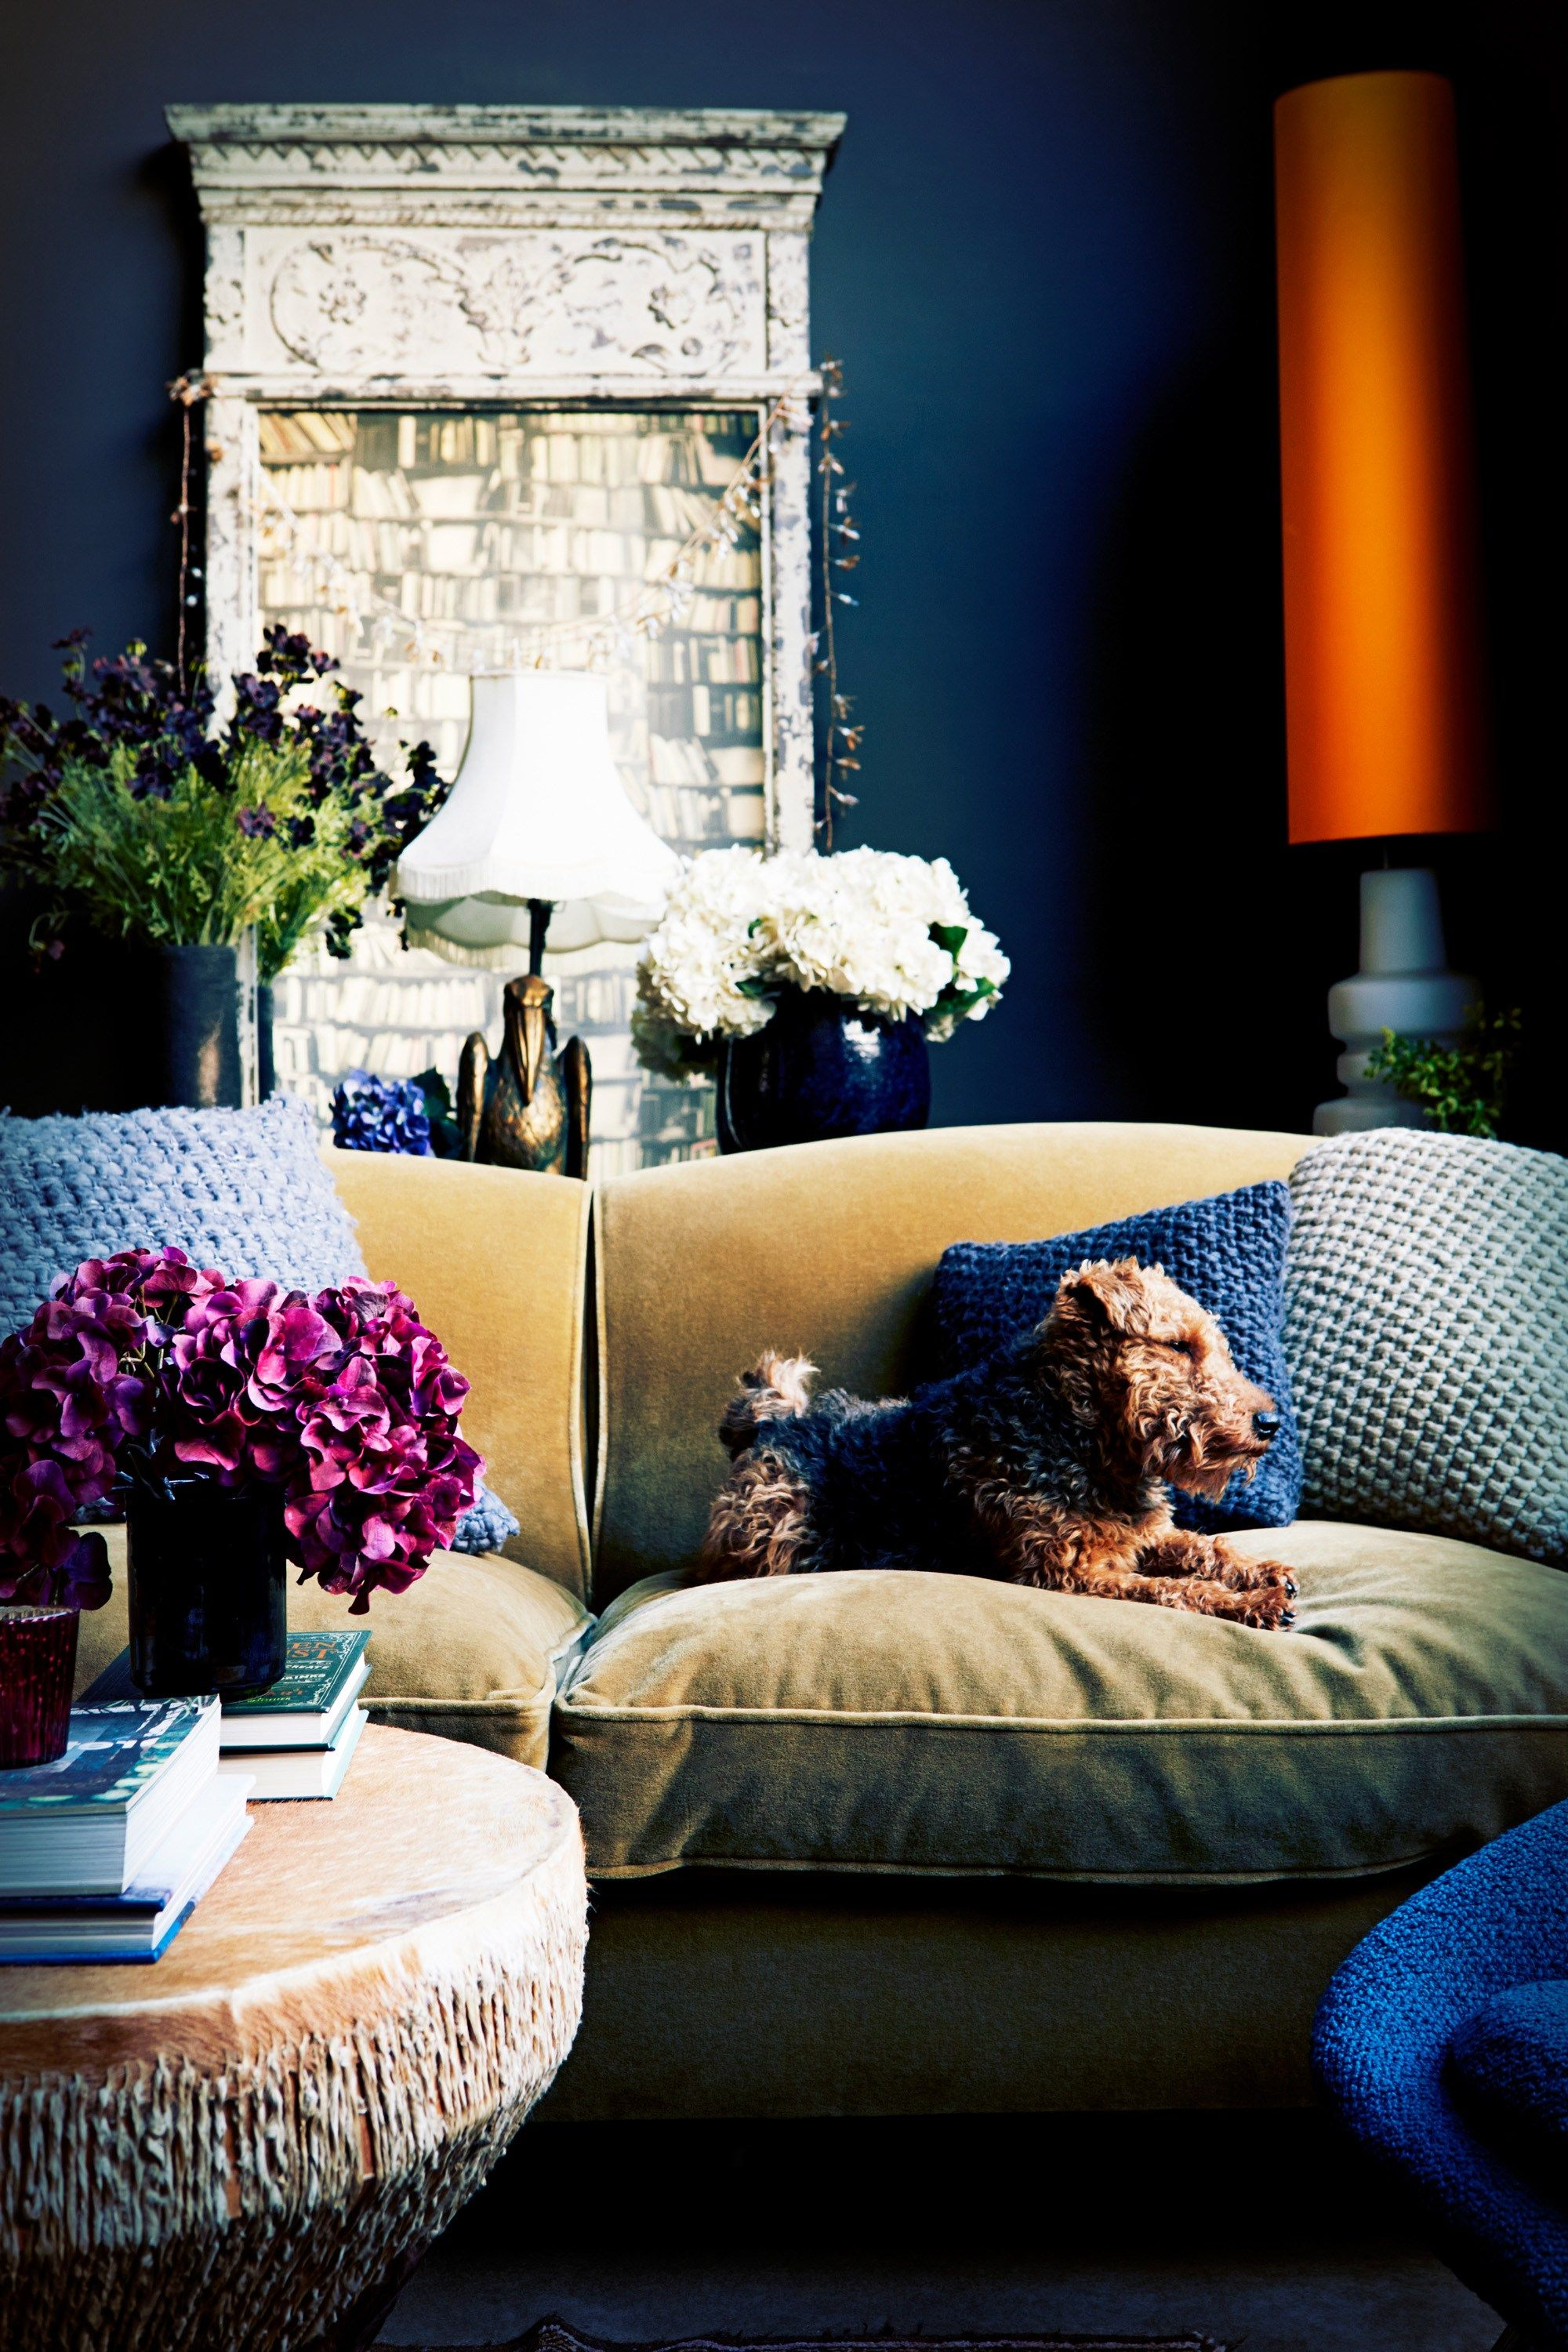 Living Room Colors That Make You Happy home to make you happy | abigail ahern, living rooms and interiors